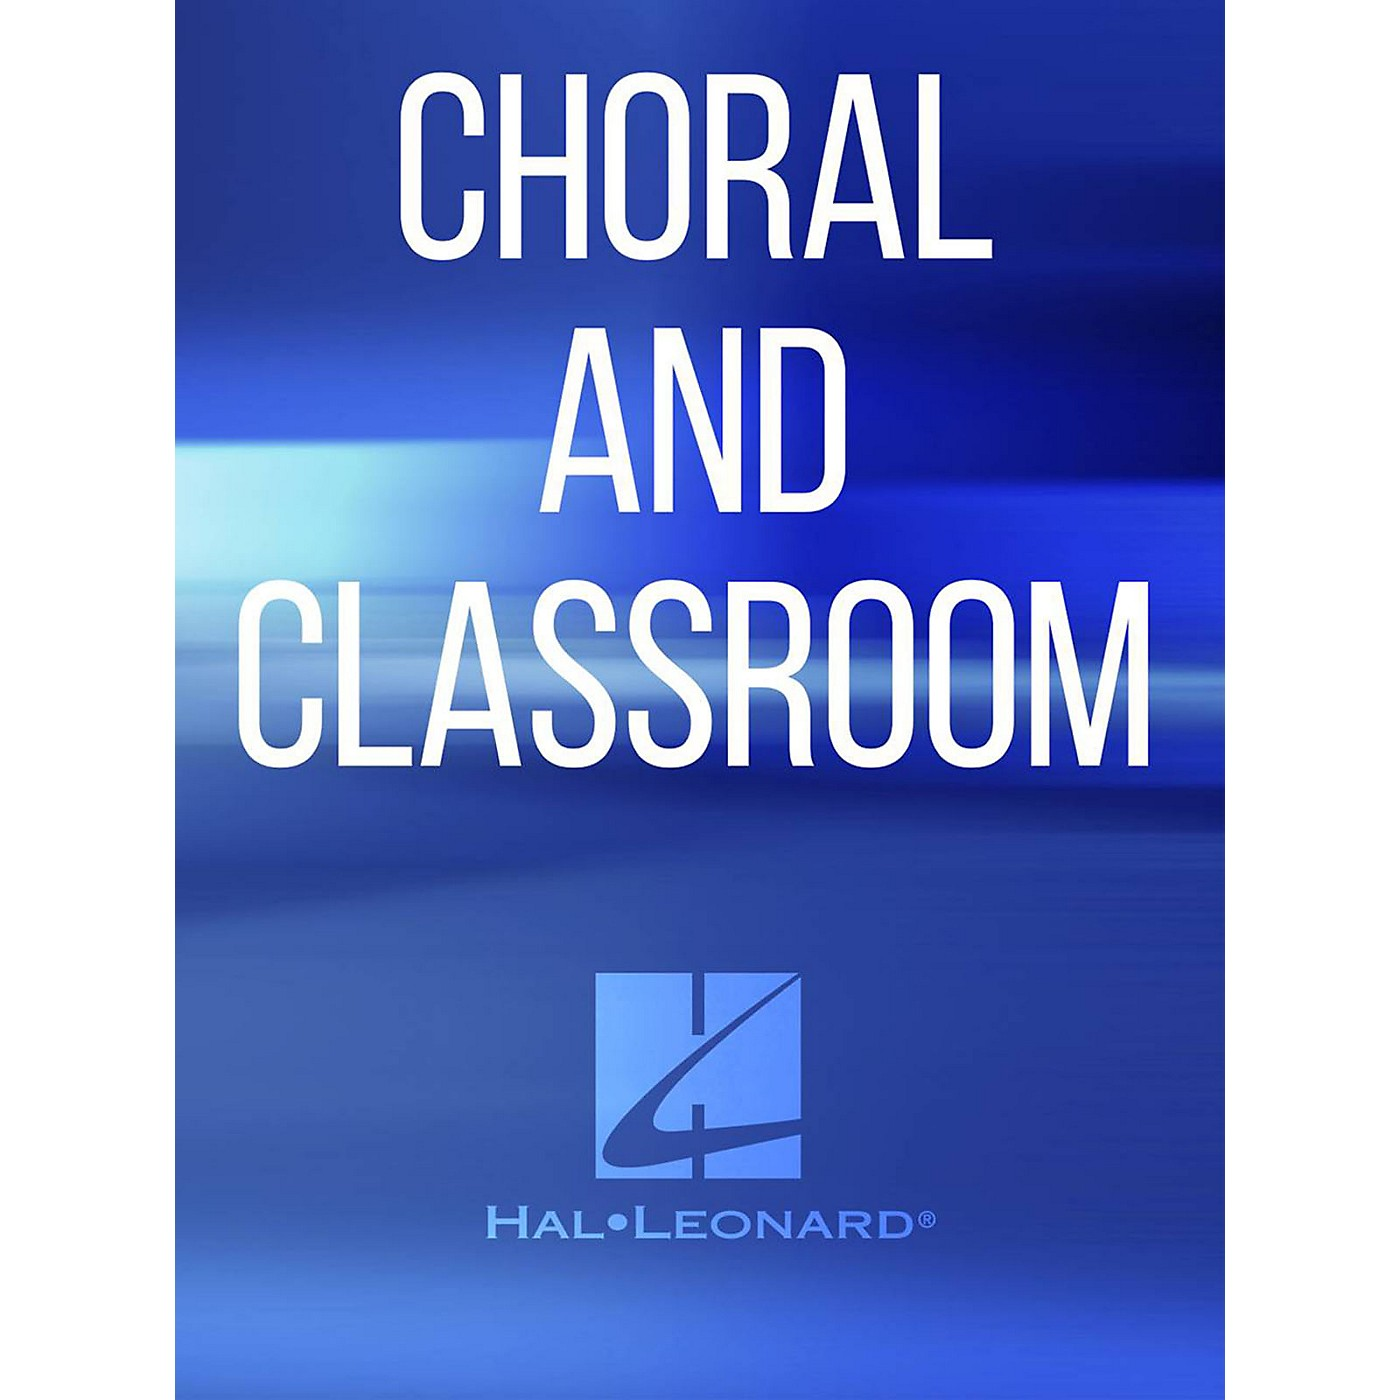 Hal Leonard Appearance Of The Angel SATB Composed by Rheinberger thumbnail